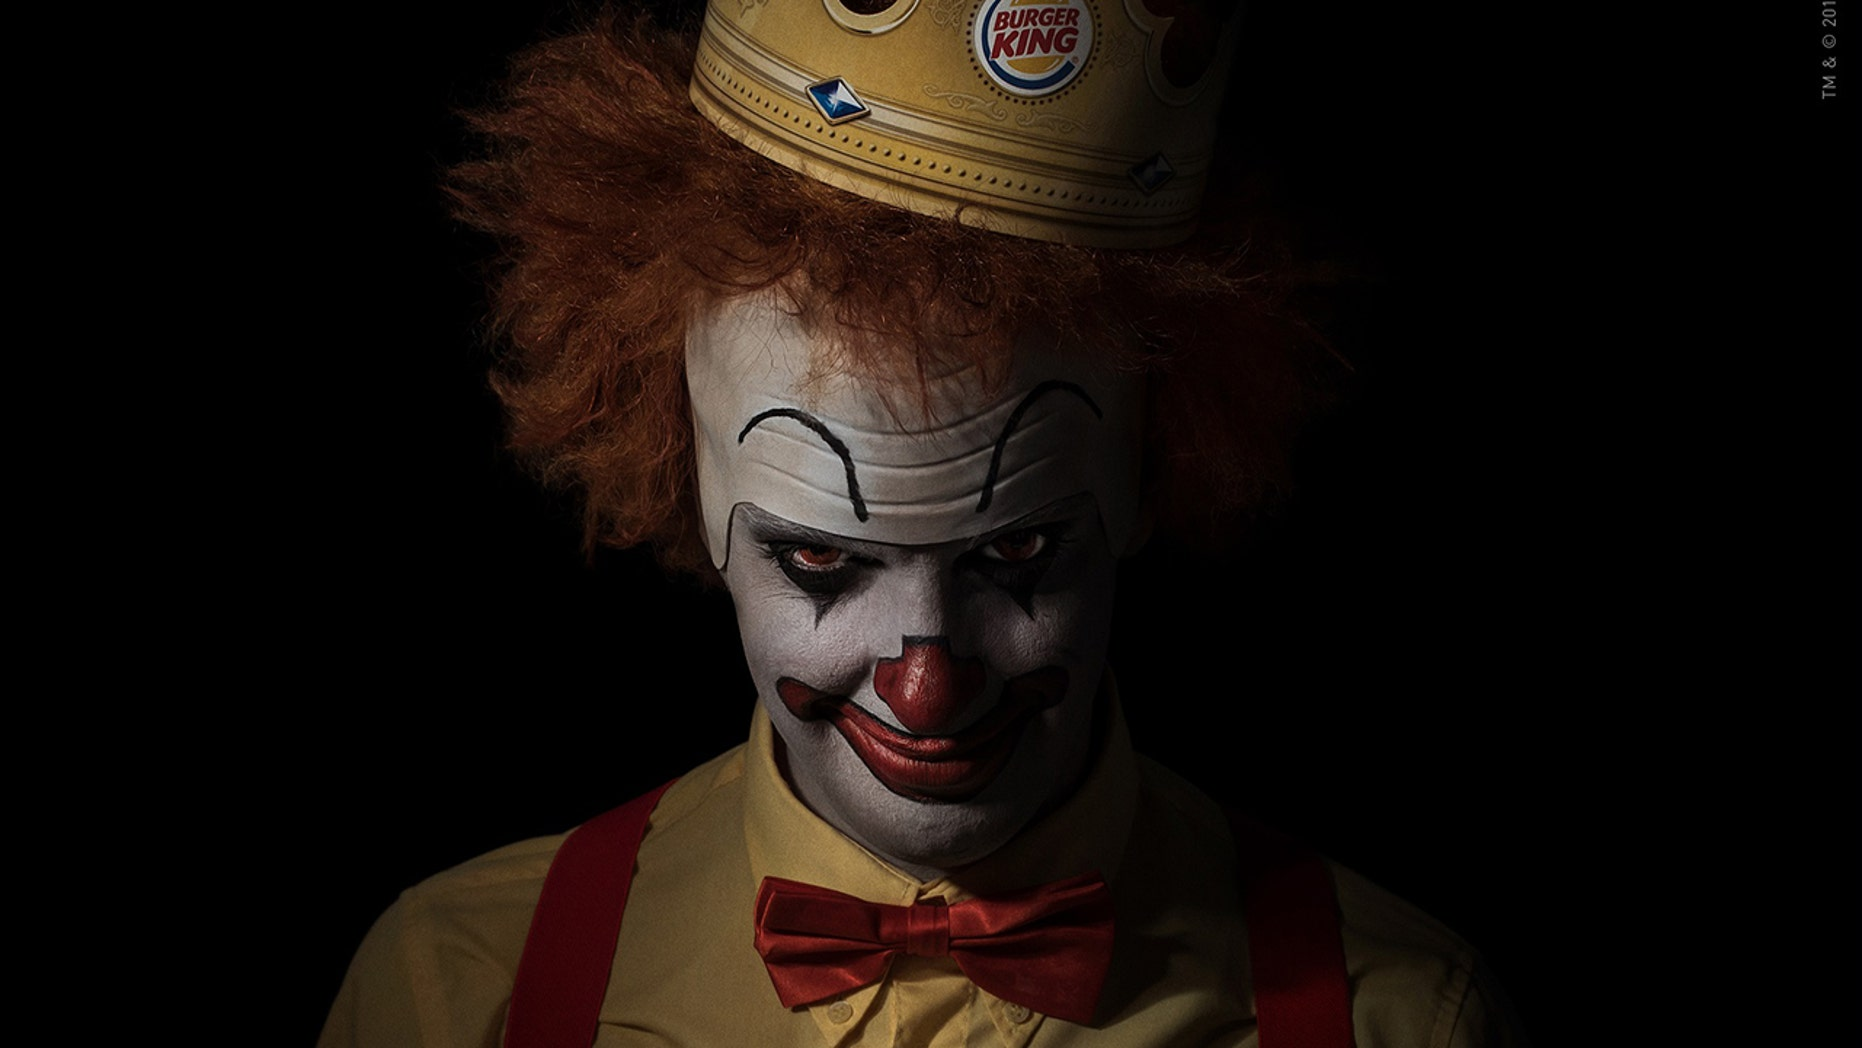 Burger King's clown looks oddly familiar.